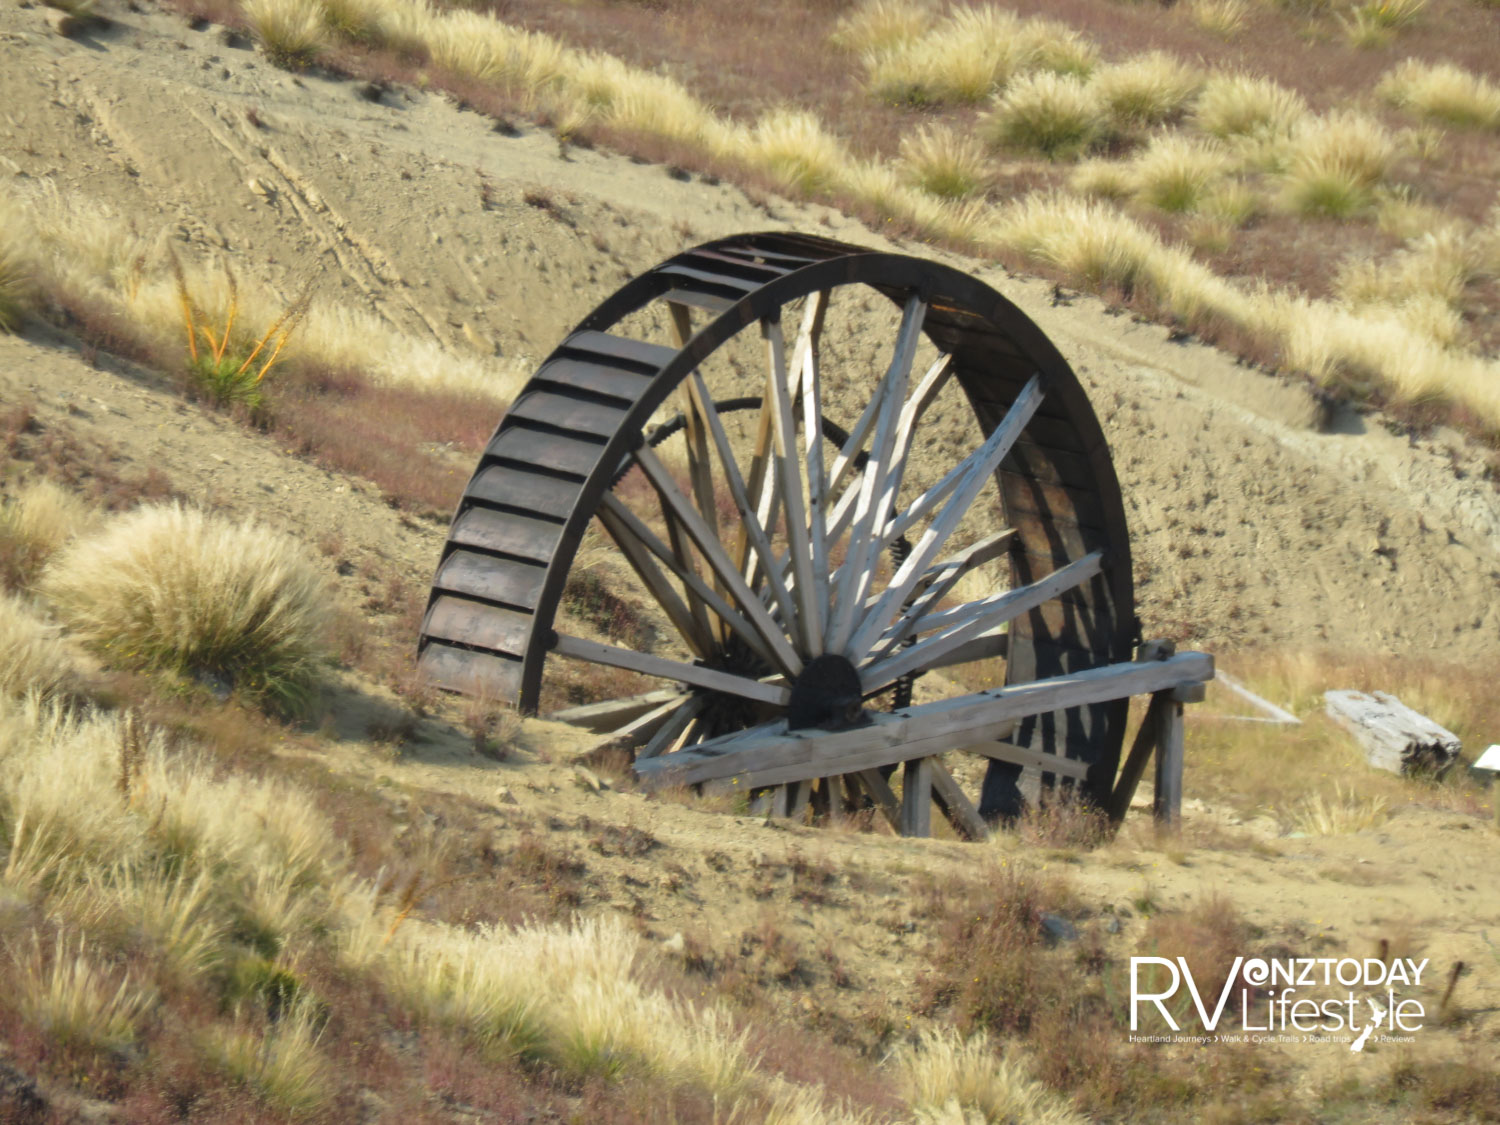 Waterwheel at the Young Australian mine workings